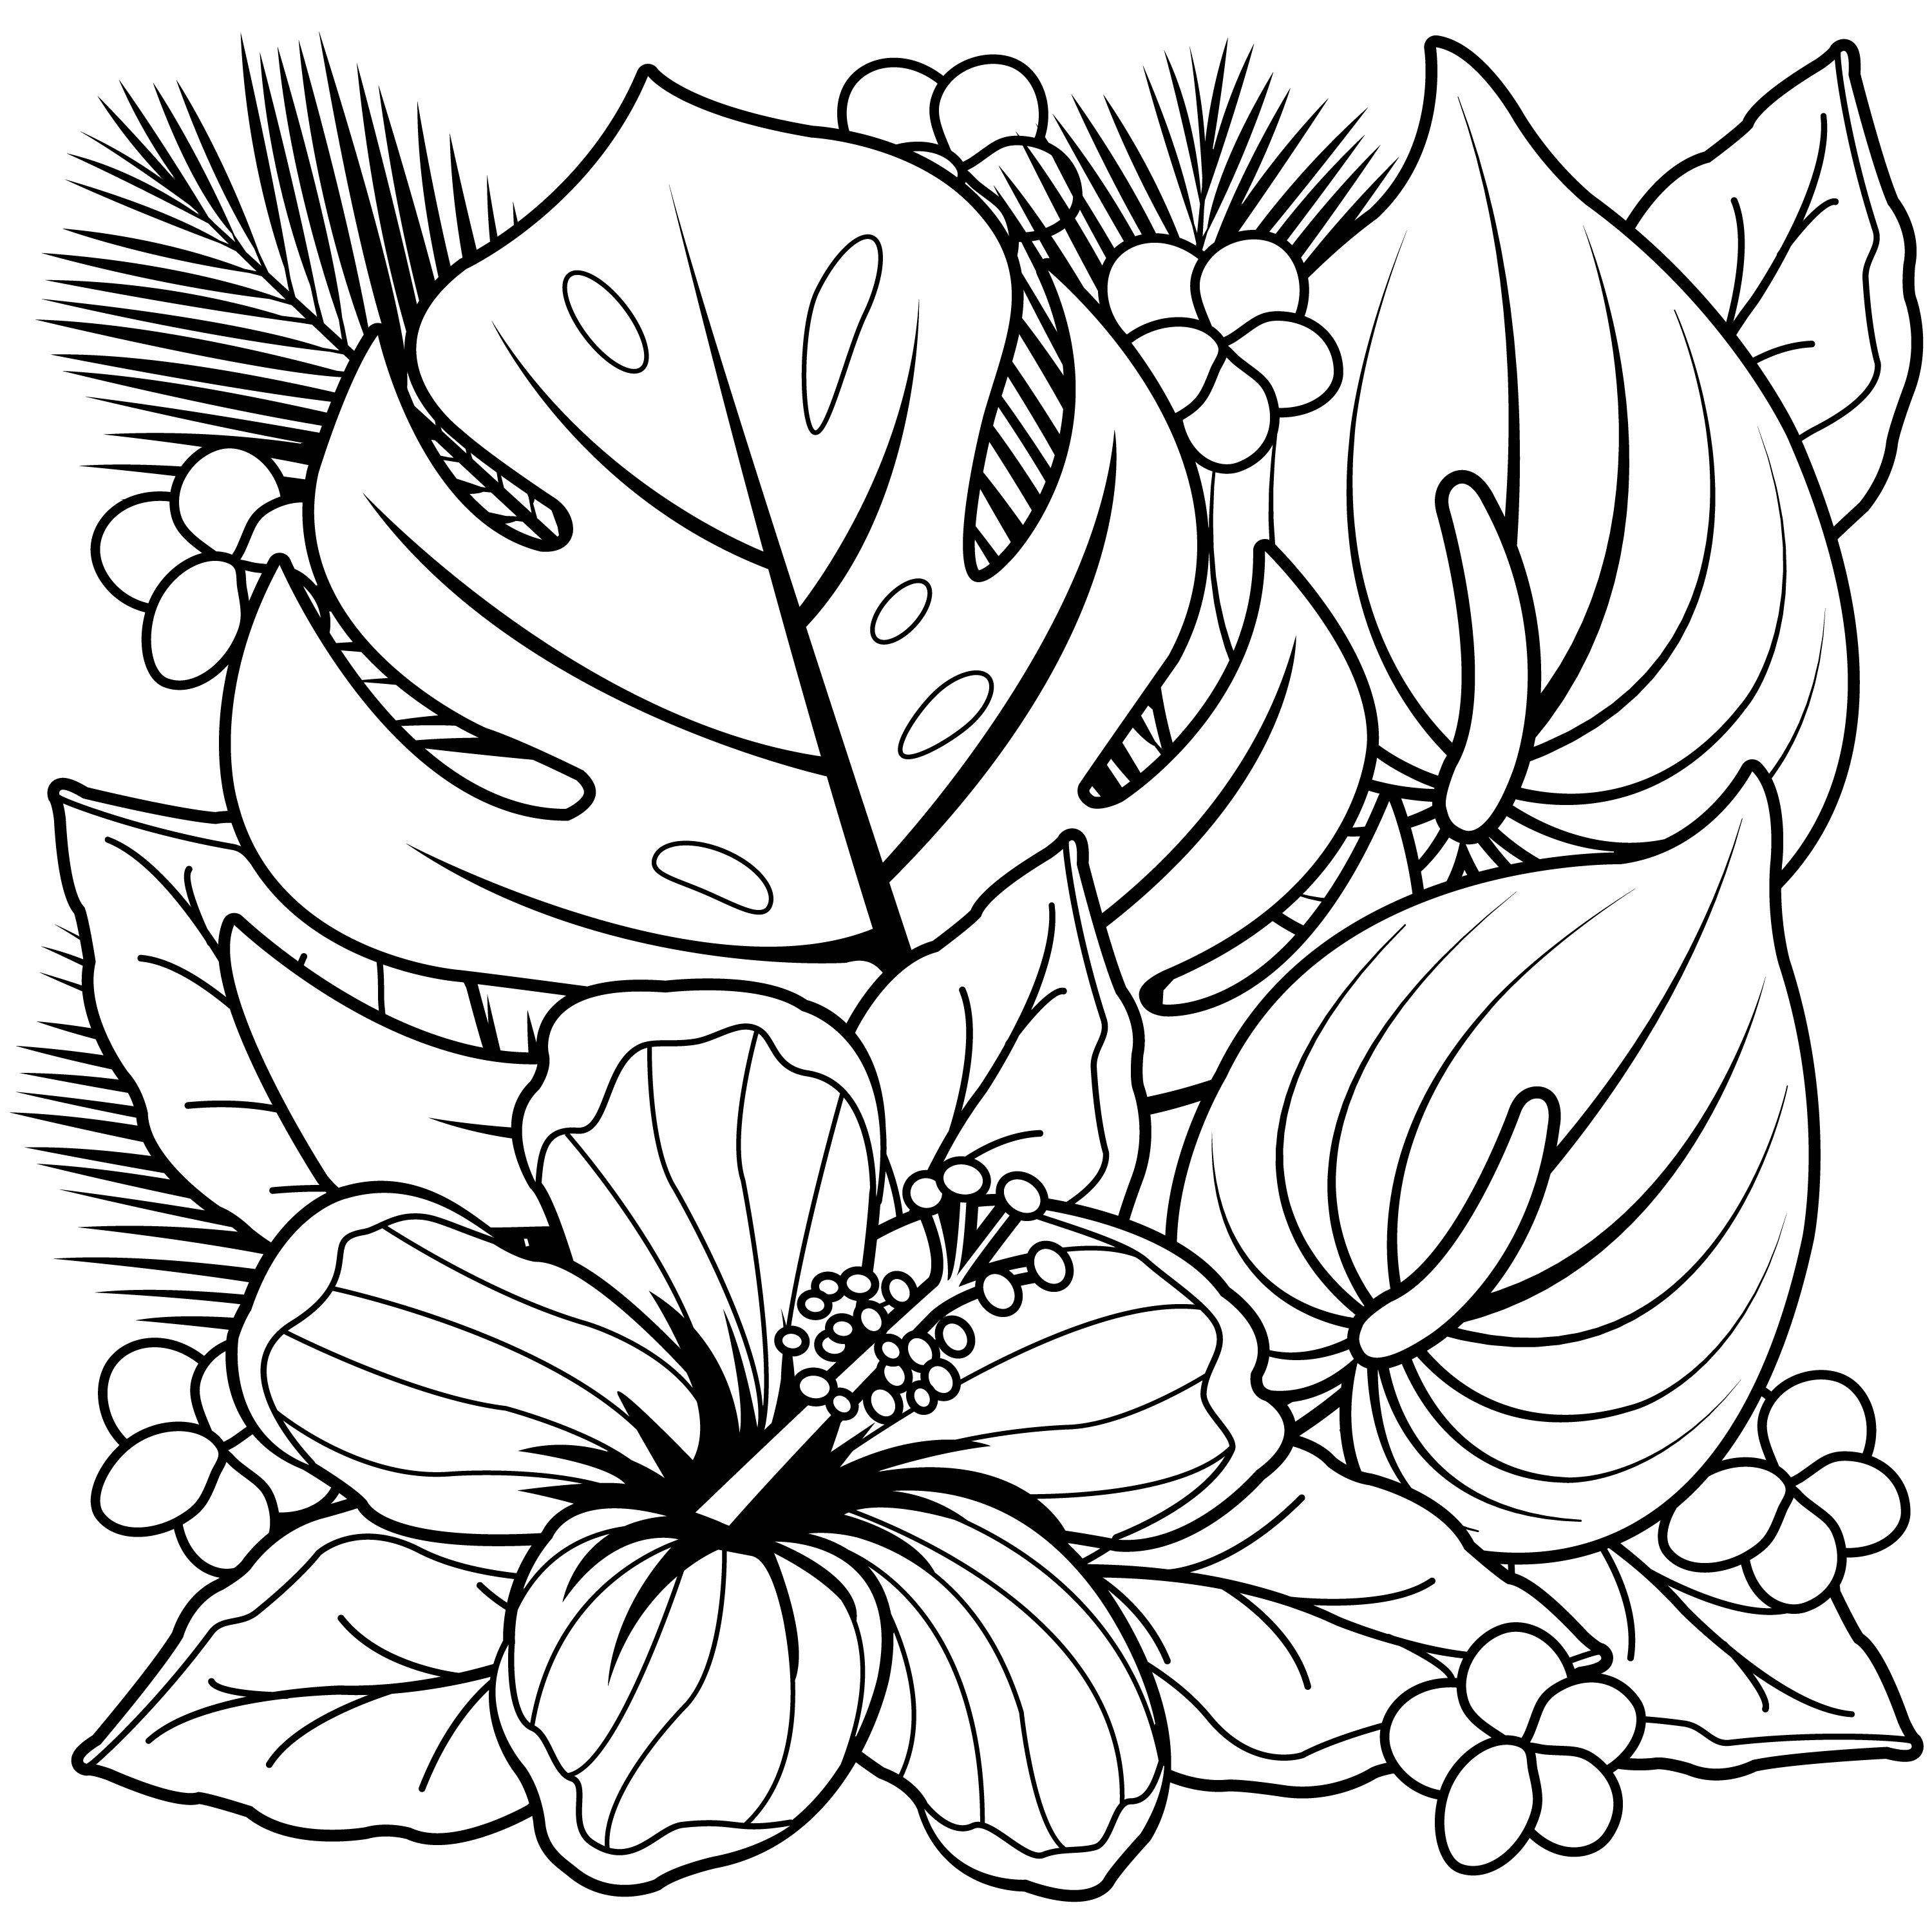 flower coloring book pages coloring pages hawaiian flowers collection free coloring book pages flower coloring